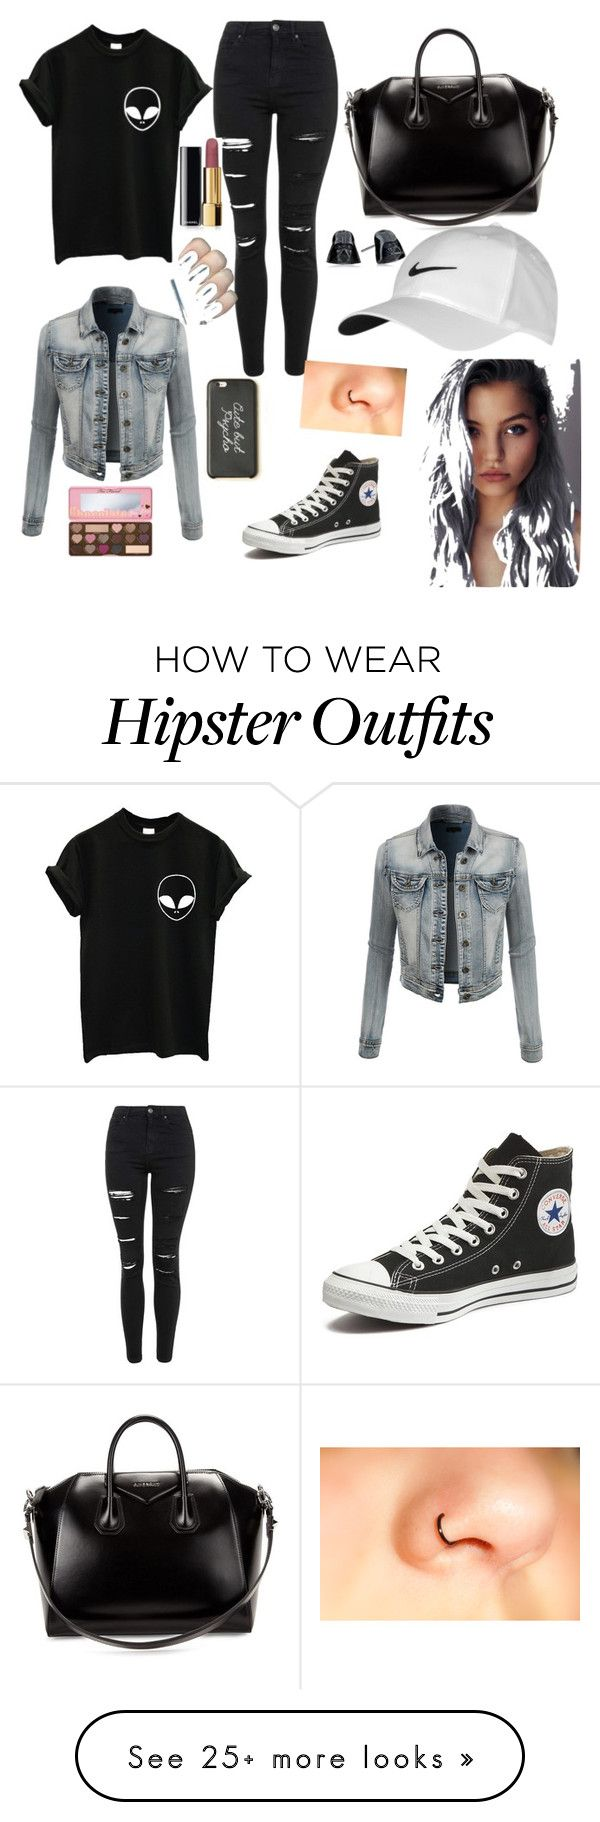 """""""Everyday look"""" by awkkxarii on Polyvore featuring Topshop, LE3NO, Converse, Givenchy, NIKE and Chanel"""